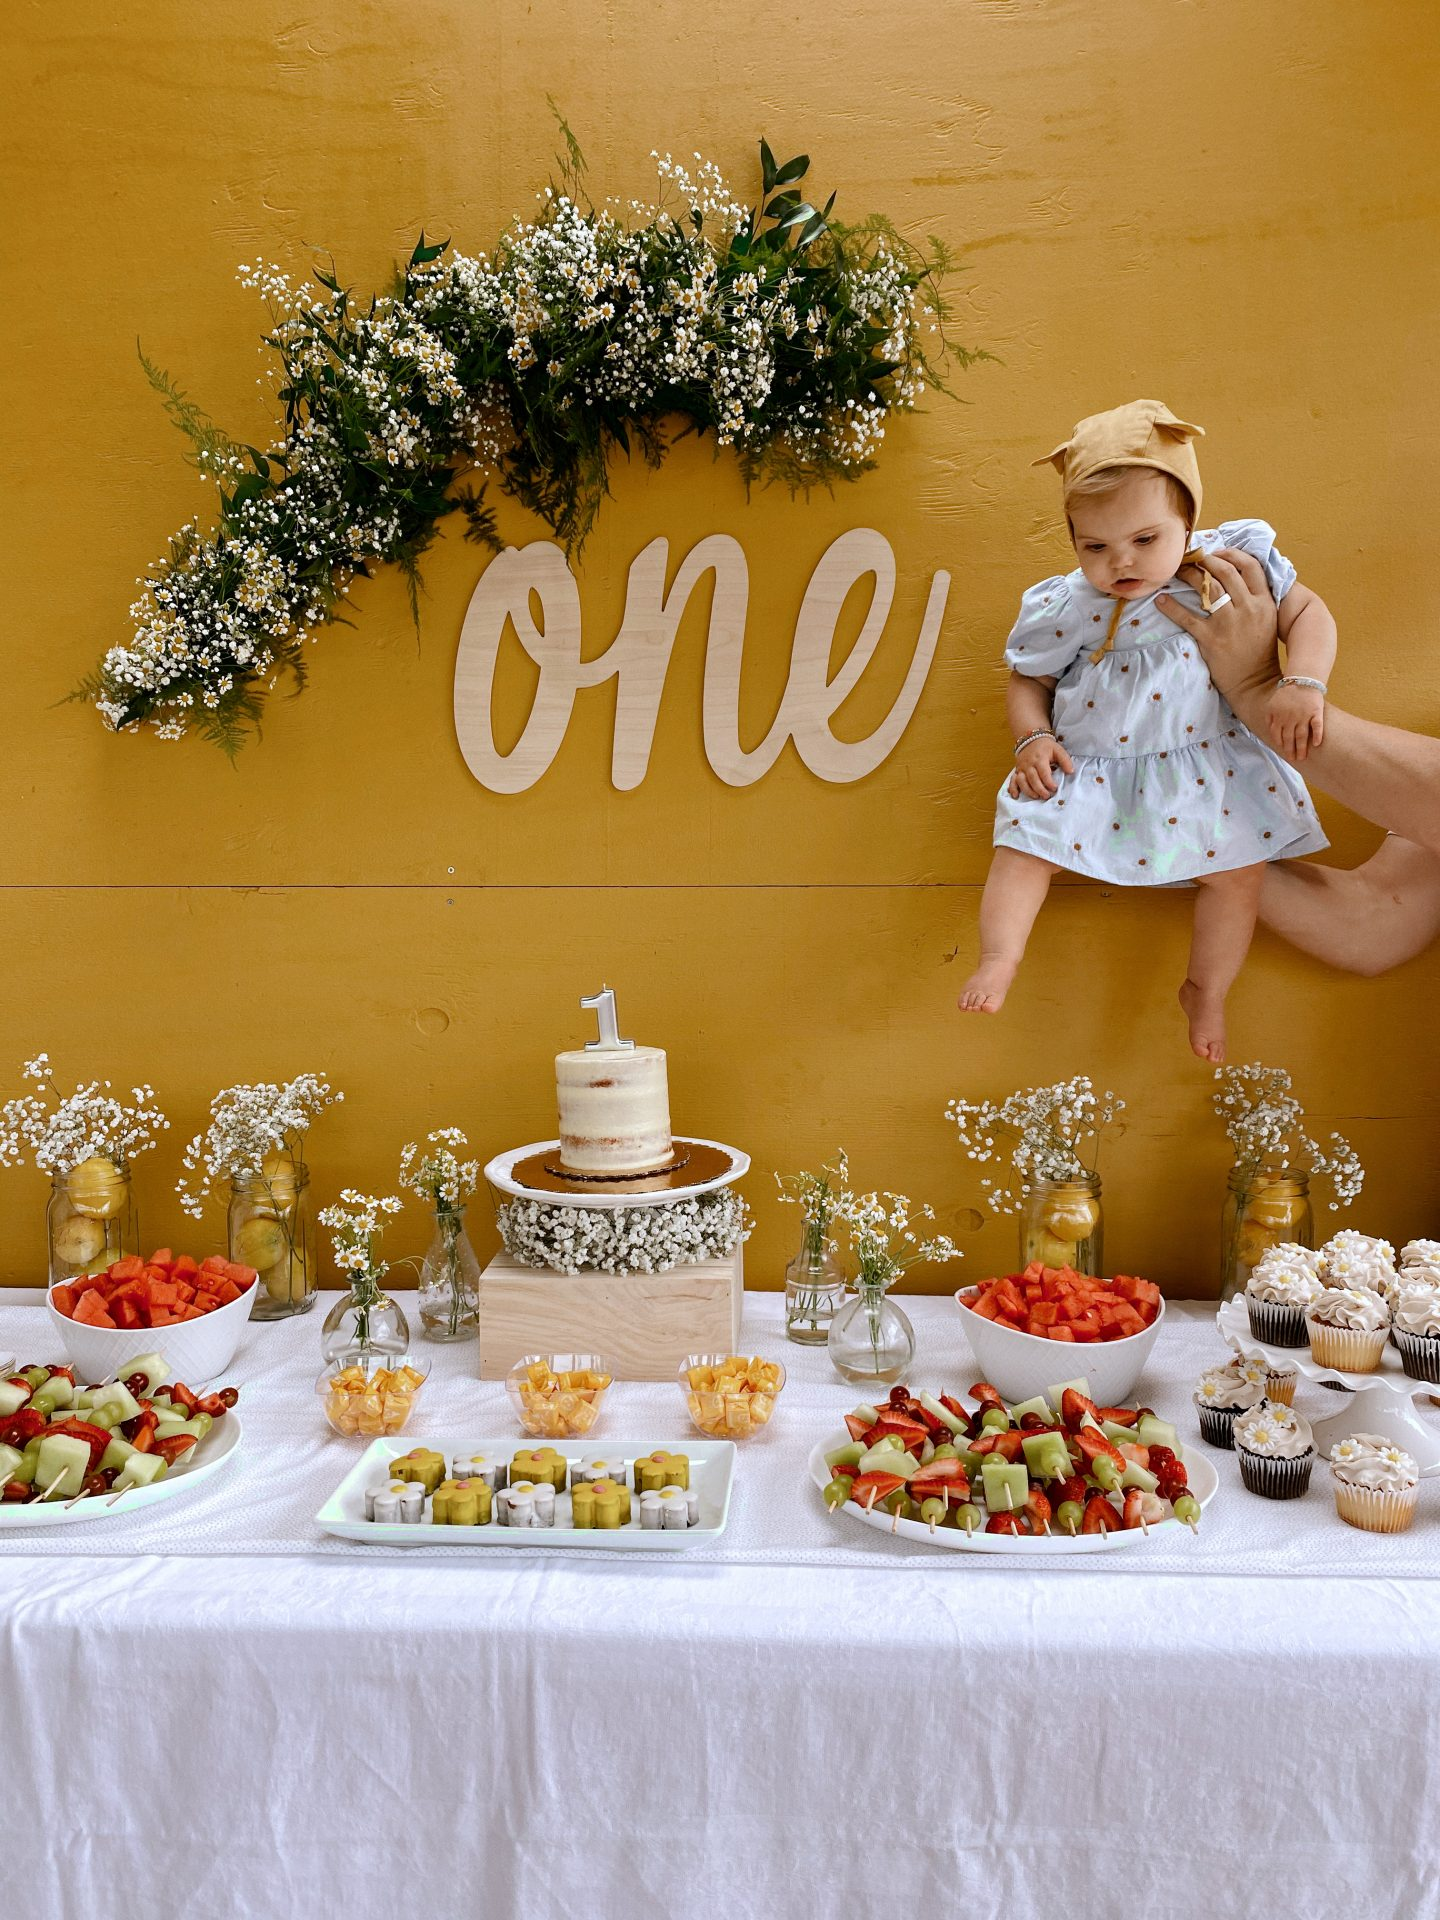 Daisy Theme Party by popular San Diego lifestyle blog, Navy Grace: image of a baby wearing a blue daisy print Zara dress and Briar Baby HONEY BEAR bonnet while being held next to a 'one' sign, daisy garland, and a food table with a cake, daisy shaped cakes, fruit skewers, vases filled with baby's breath and daisies, and daisy cupcakes.